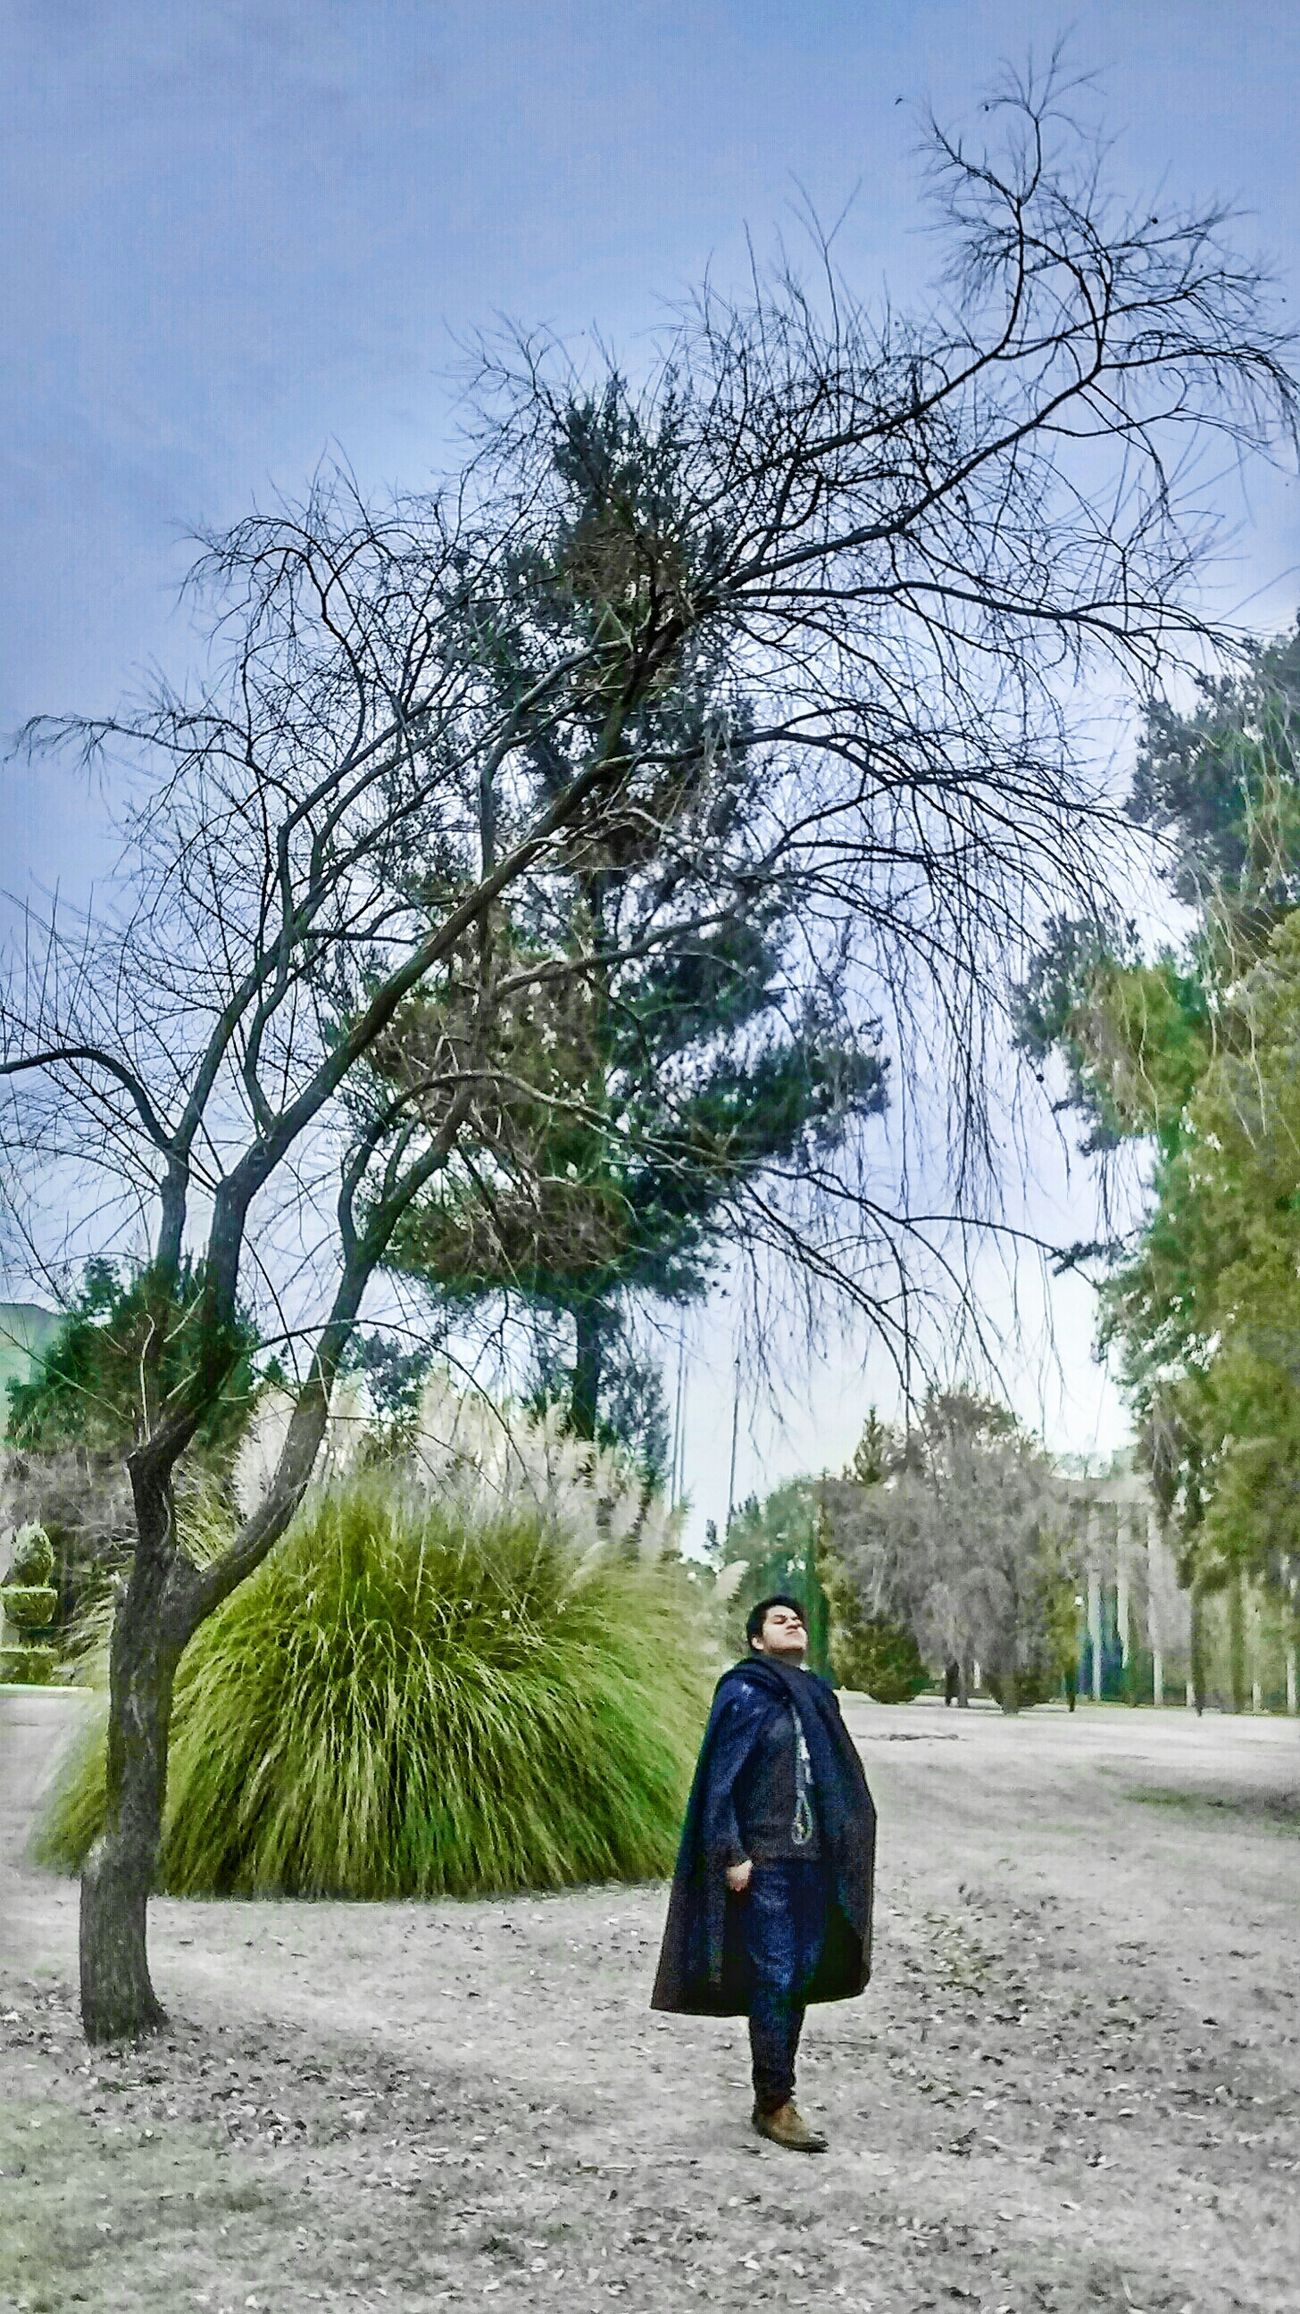 Verde Jardin Nature Arboles Arbol. Madera Mexicolors Freelance Life Natural Naturaleza Rustic Mexicotradicion Traveling Azul Climate Nature Photography Colores Magic Magical Magia Otoñal Magia.